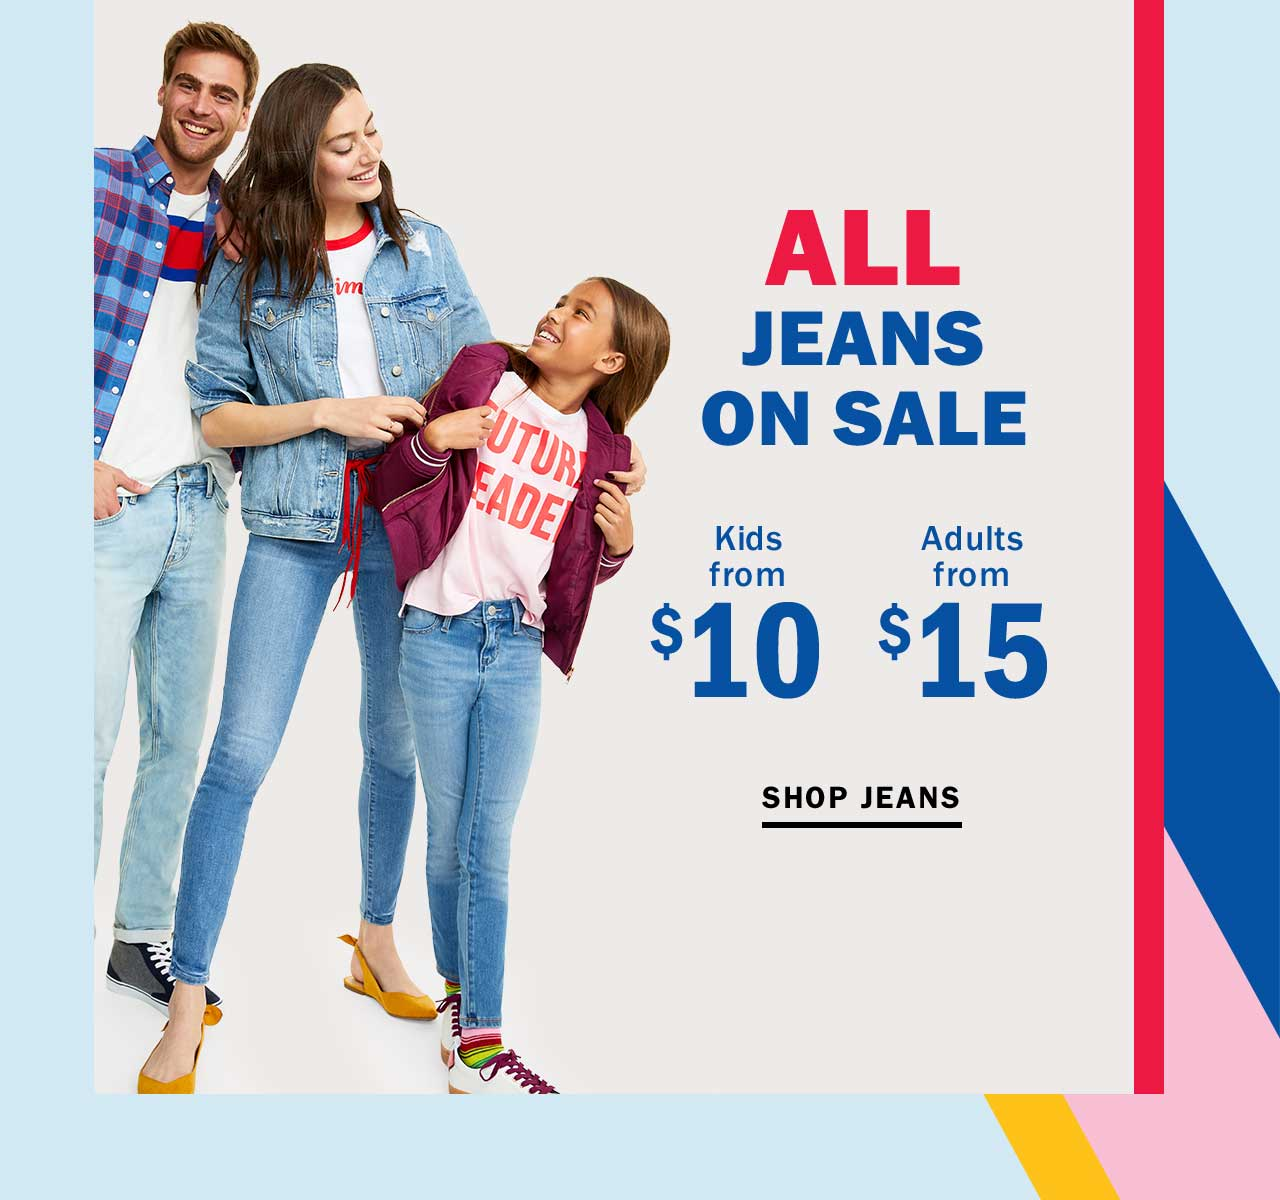 ALL JEANS ON SALE | SHOP JEANS